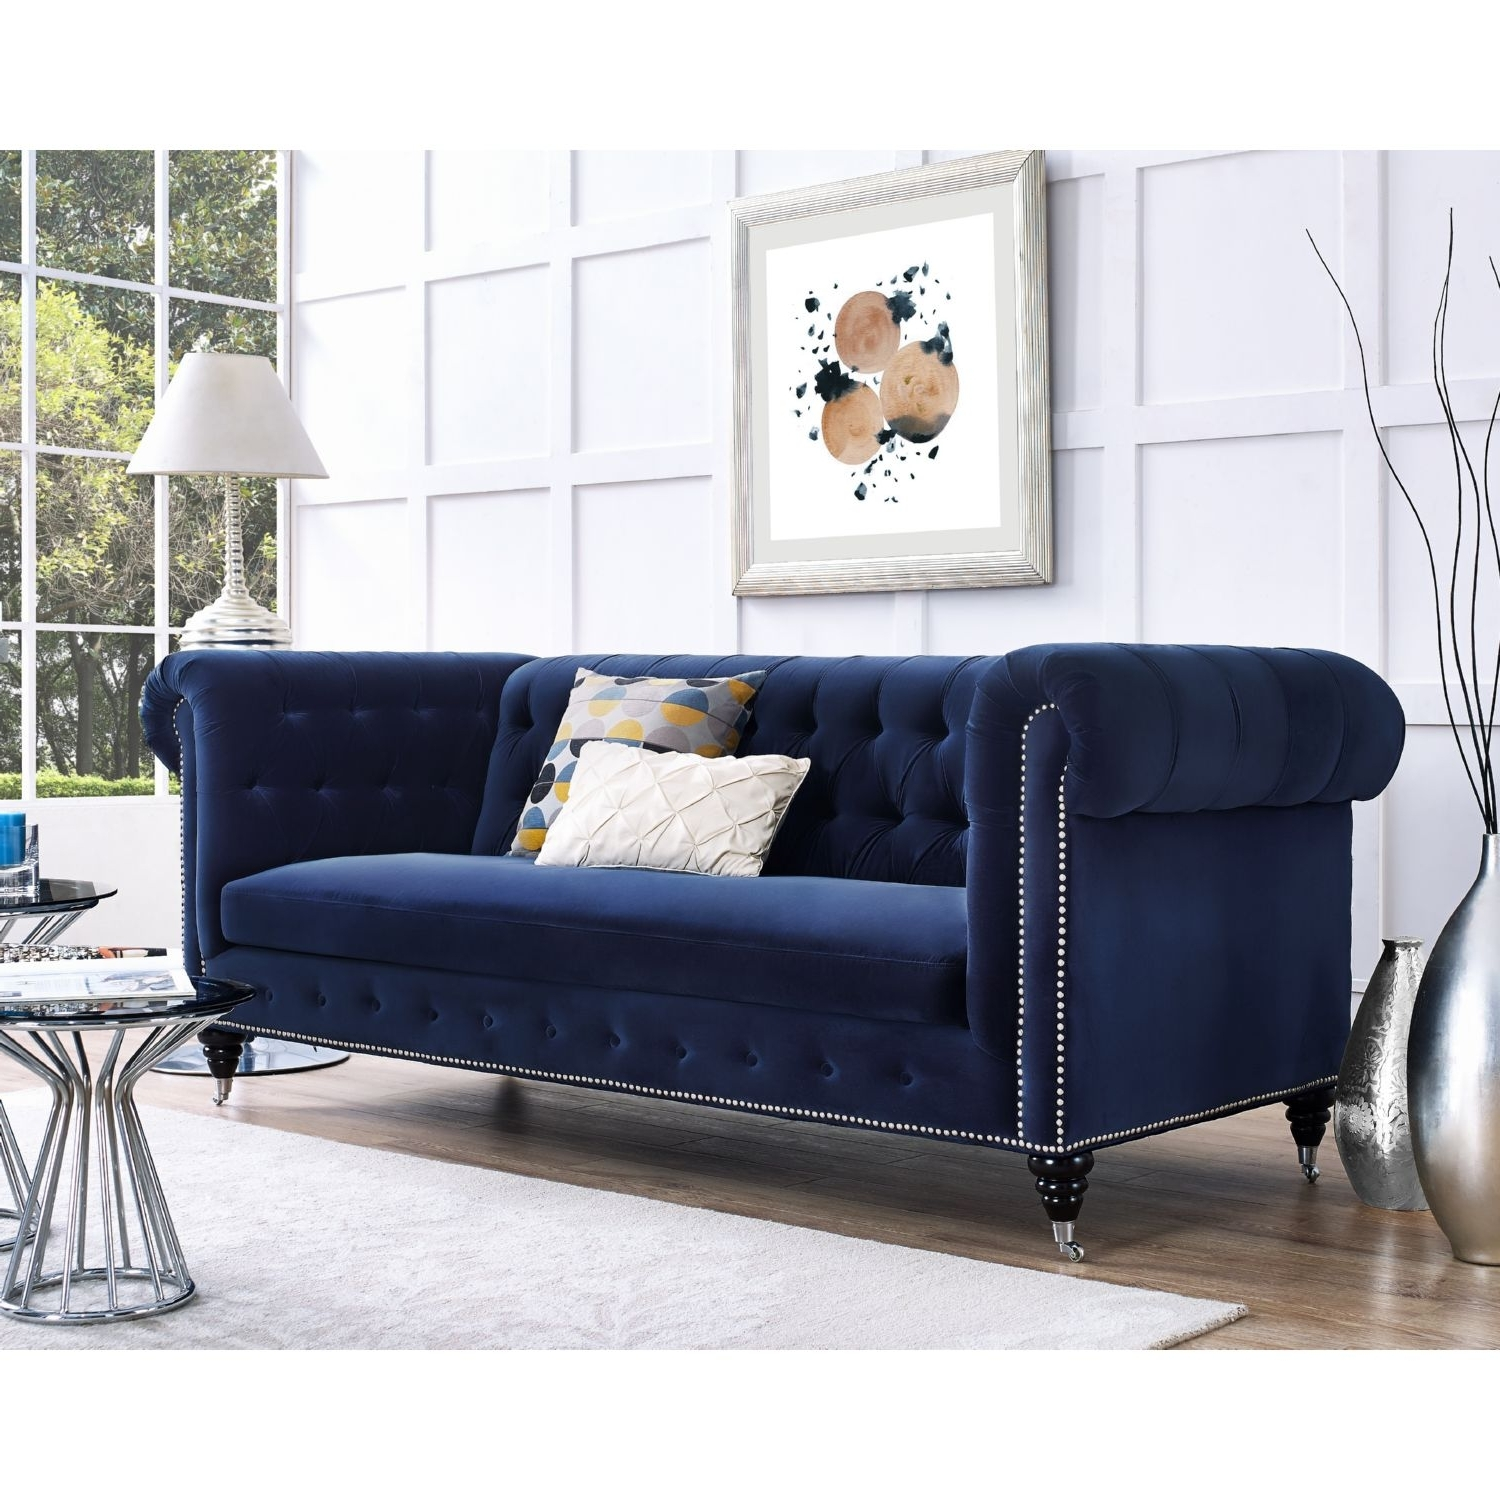 Well Known Furniture : Button Tufted Fabric Sofa Sofa Dallas Furniture Ottawa Intended For Dufresne Sectional Sofas (View 3 of 15)